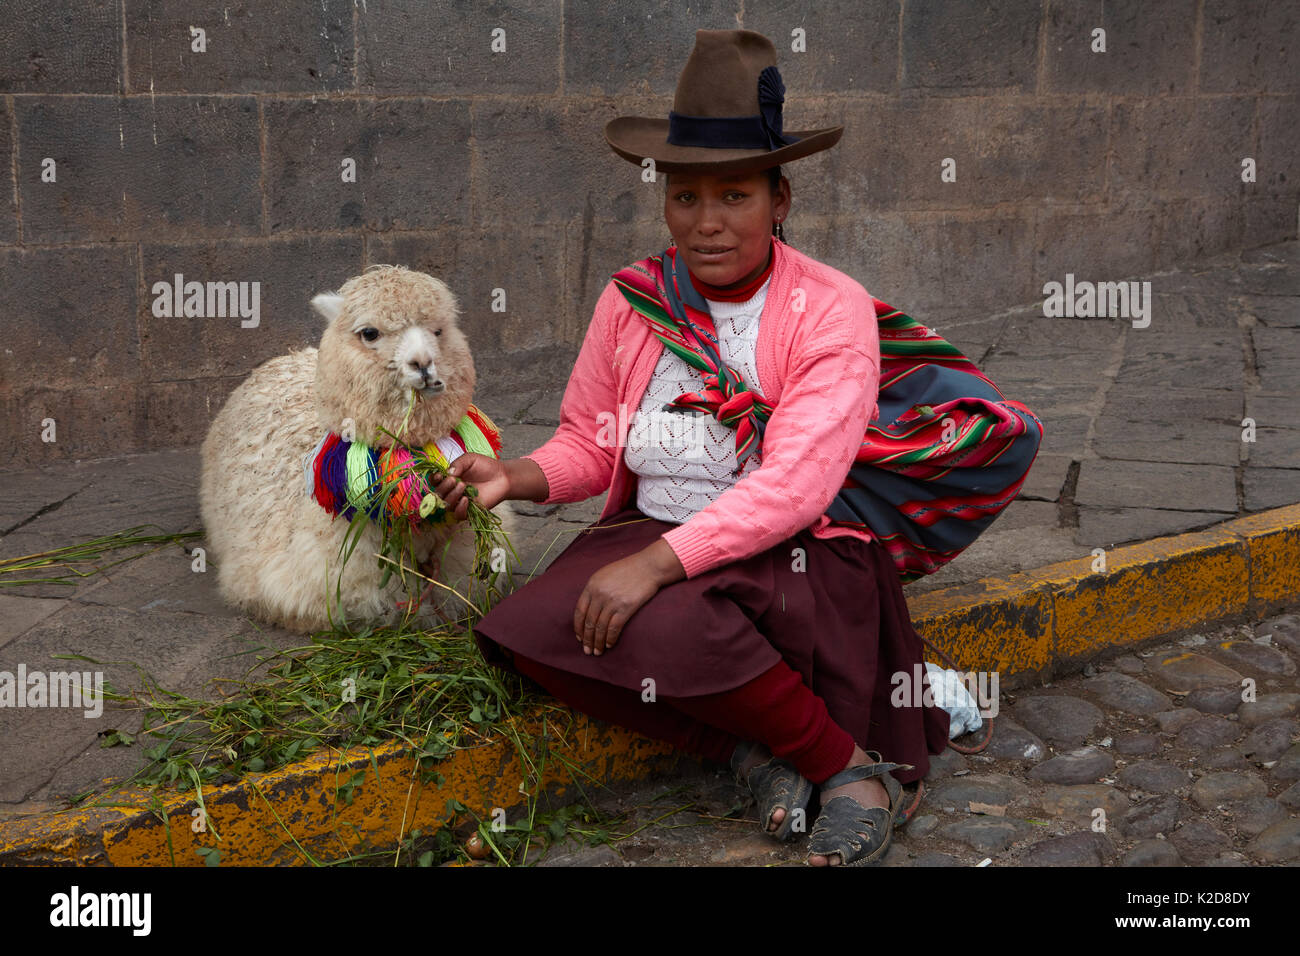 Alpaca Clothing, Peru Stock Photos & Alpaca Clothing, Peru ...